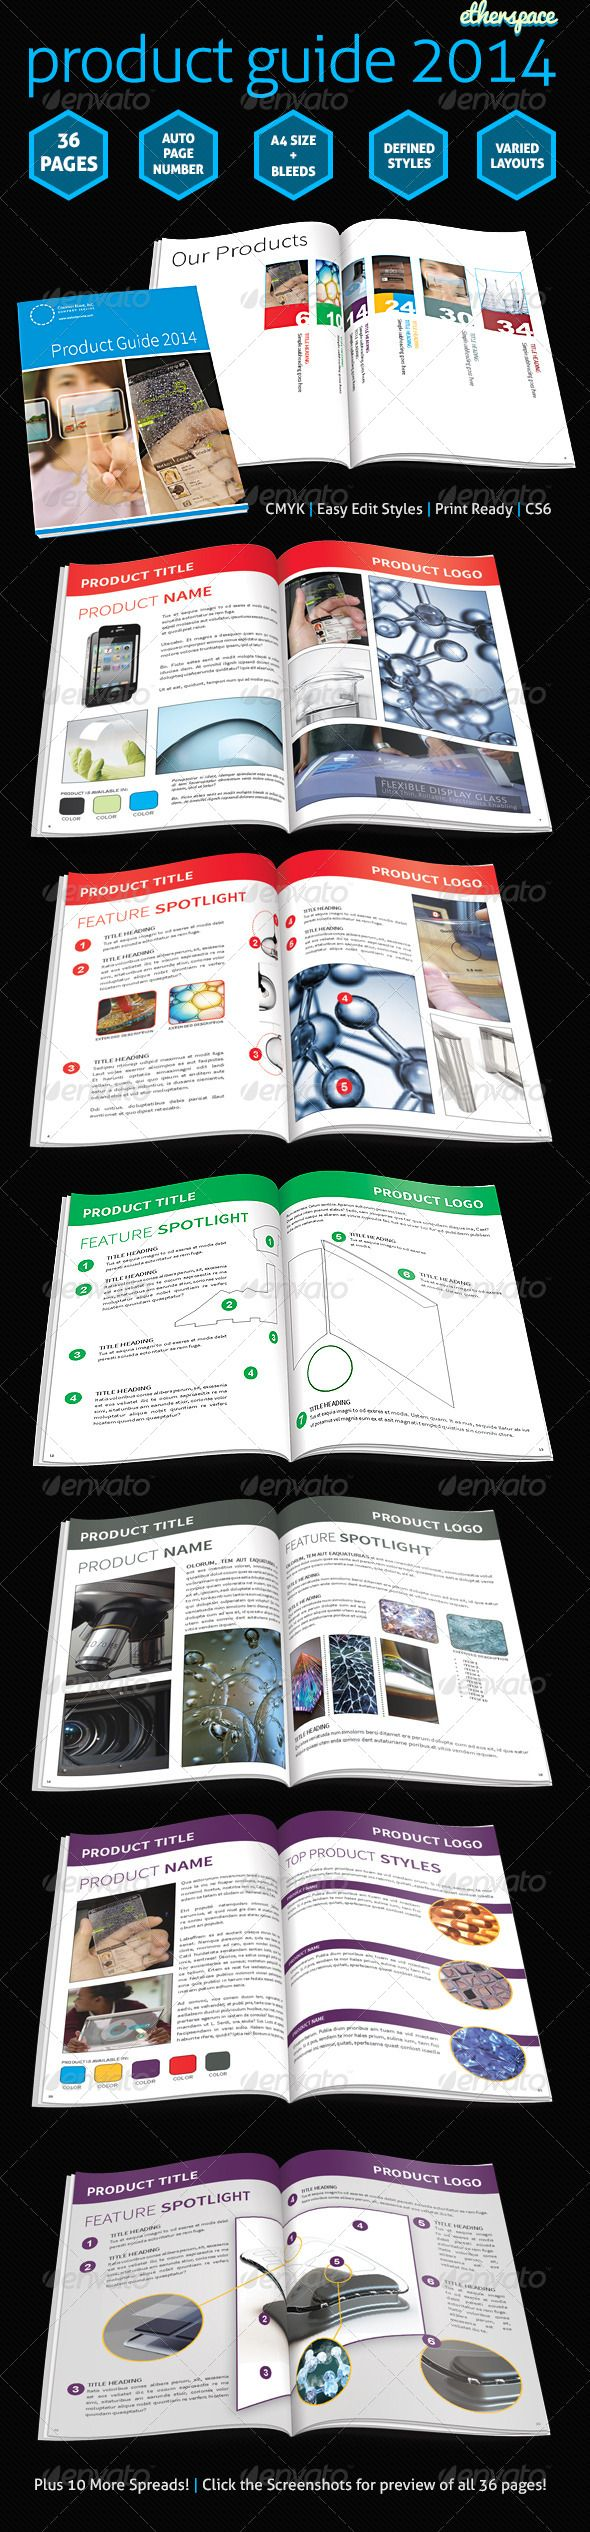 Best Print Newsletter Templates Images On Pinterest Print - Pages newsletter templates